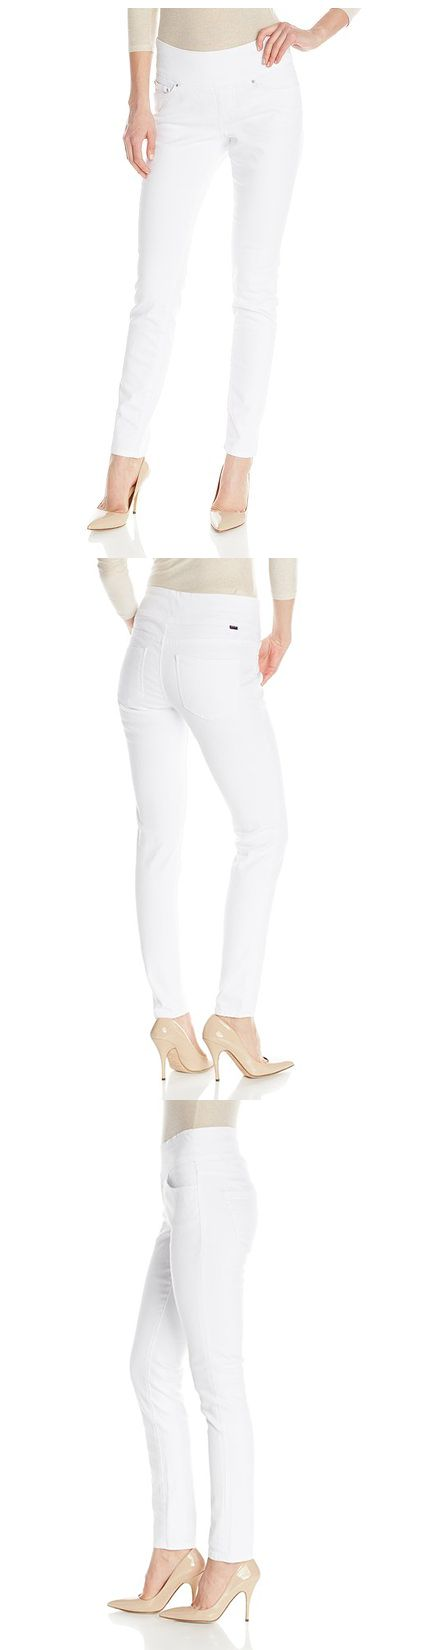 JAG JEANS WOMEN'S NORA SKINNY PULL ON JEAN------- Color: White------- 98% Cotton, 2% Spandex------- Leg opening 11.5 inch------- Inseam 31 inch------- Tight,Skinny Jeans for Casual -------Wear in Summer/Spring of 2016-------